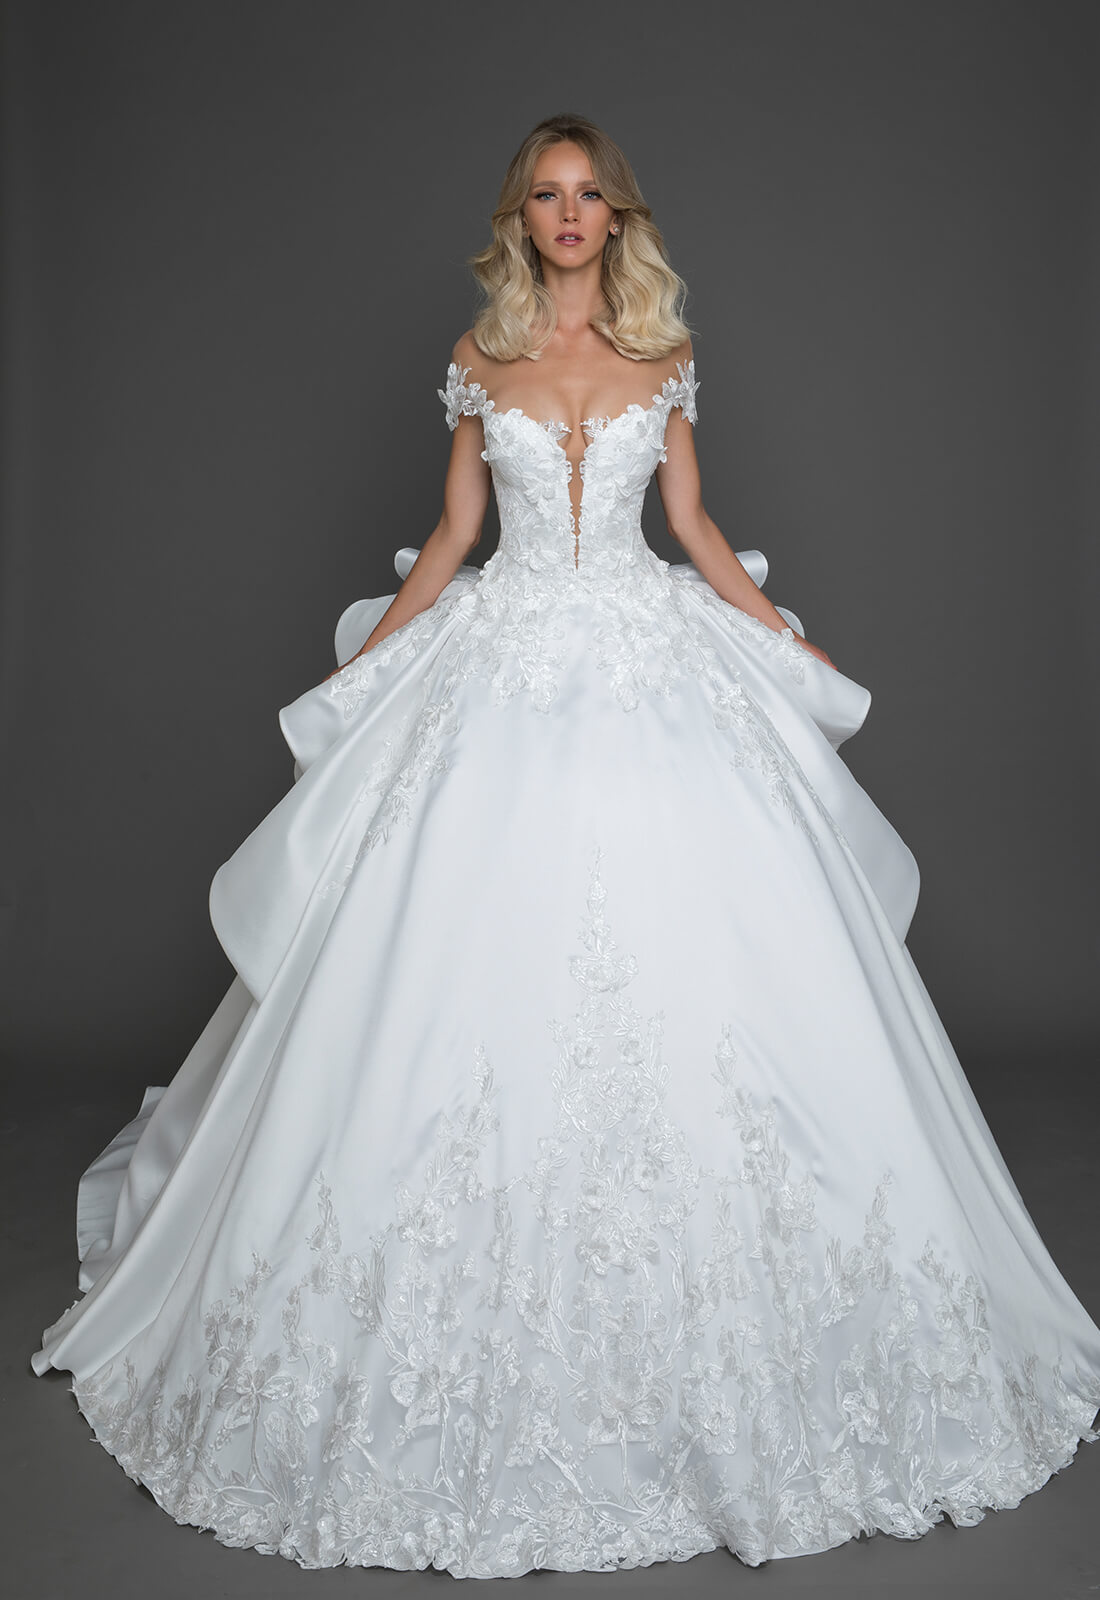 5 Over The Top Pnina Tornai Ball Gowns | Kleinfeld Bridal